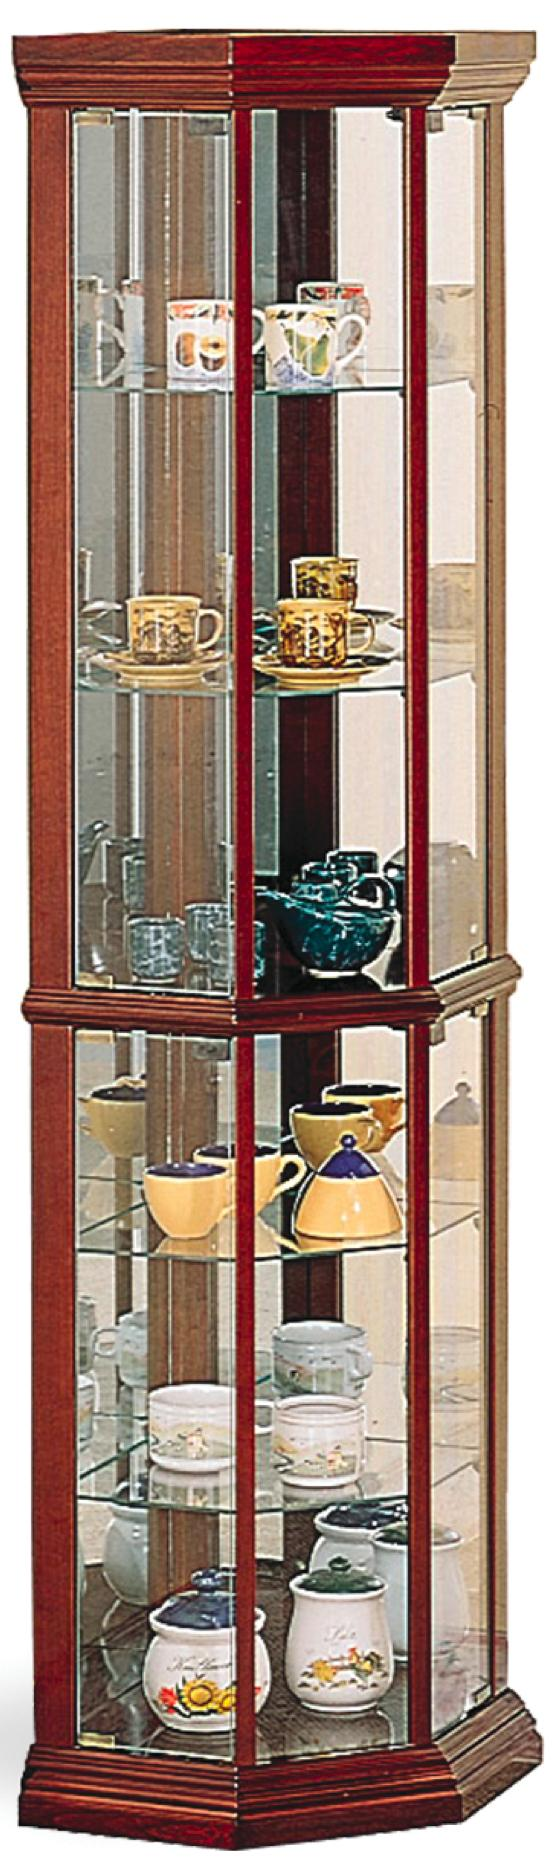 Curio Cabinets Curio Cabinet by Coaster at Northeast Factory Direct